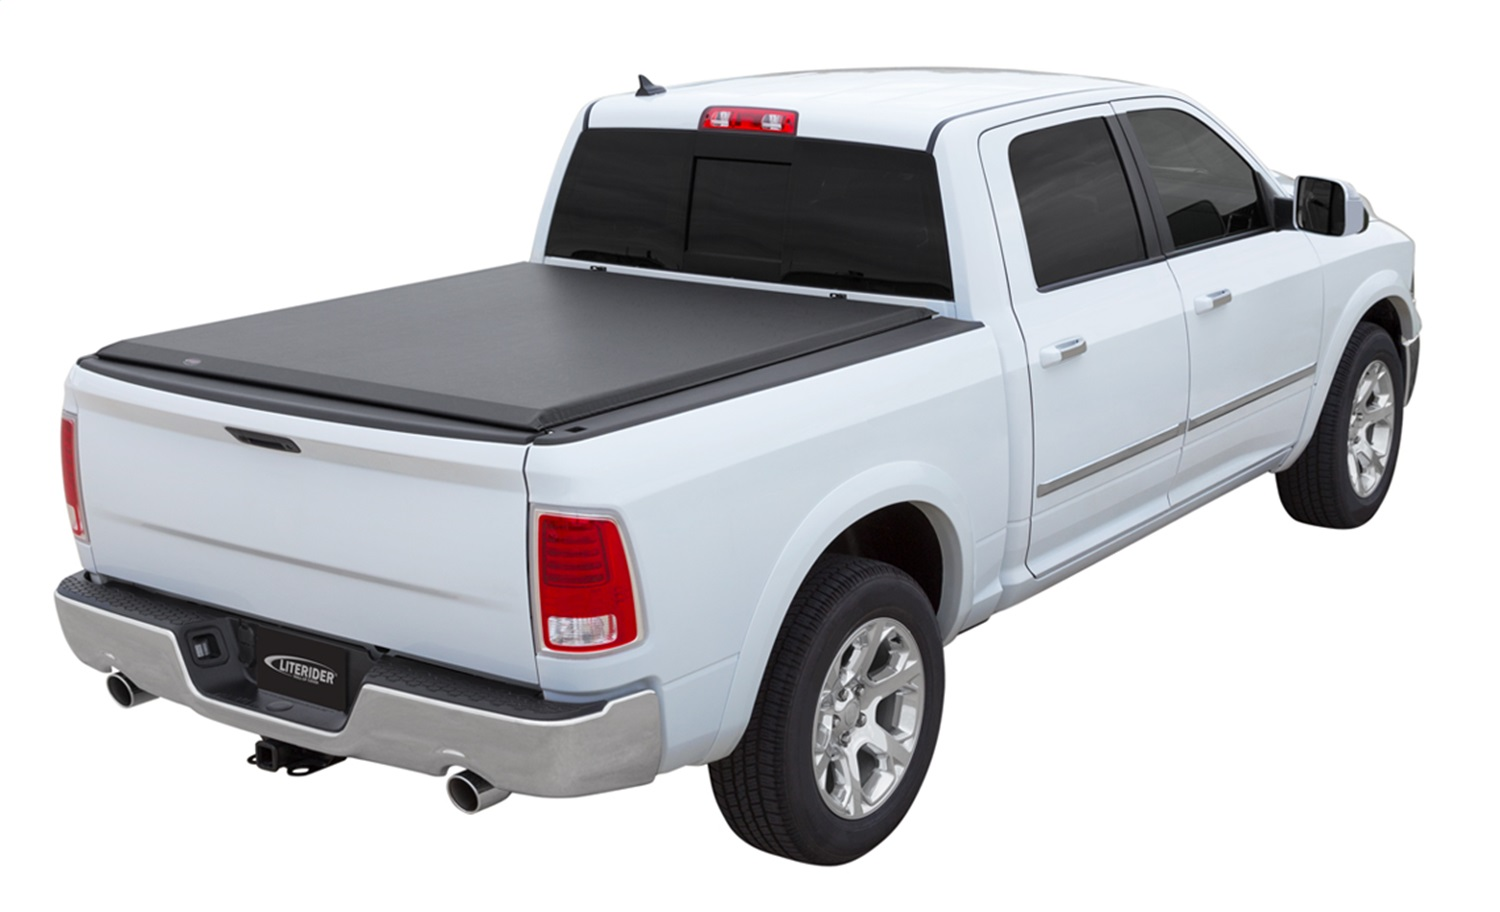 Access Cover 34239 LITERIDER Roll-Up Cover Fits 19-21 1500